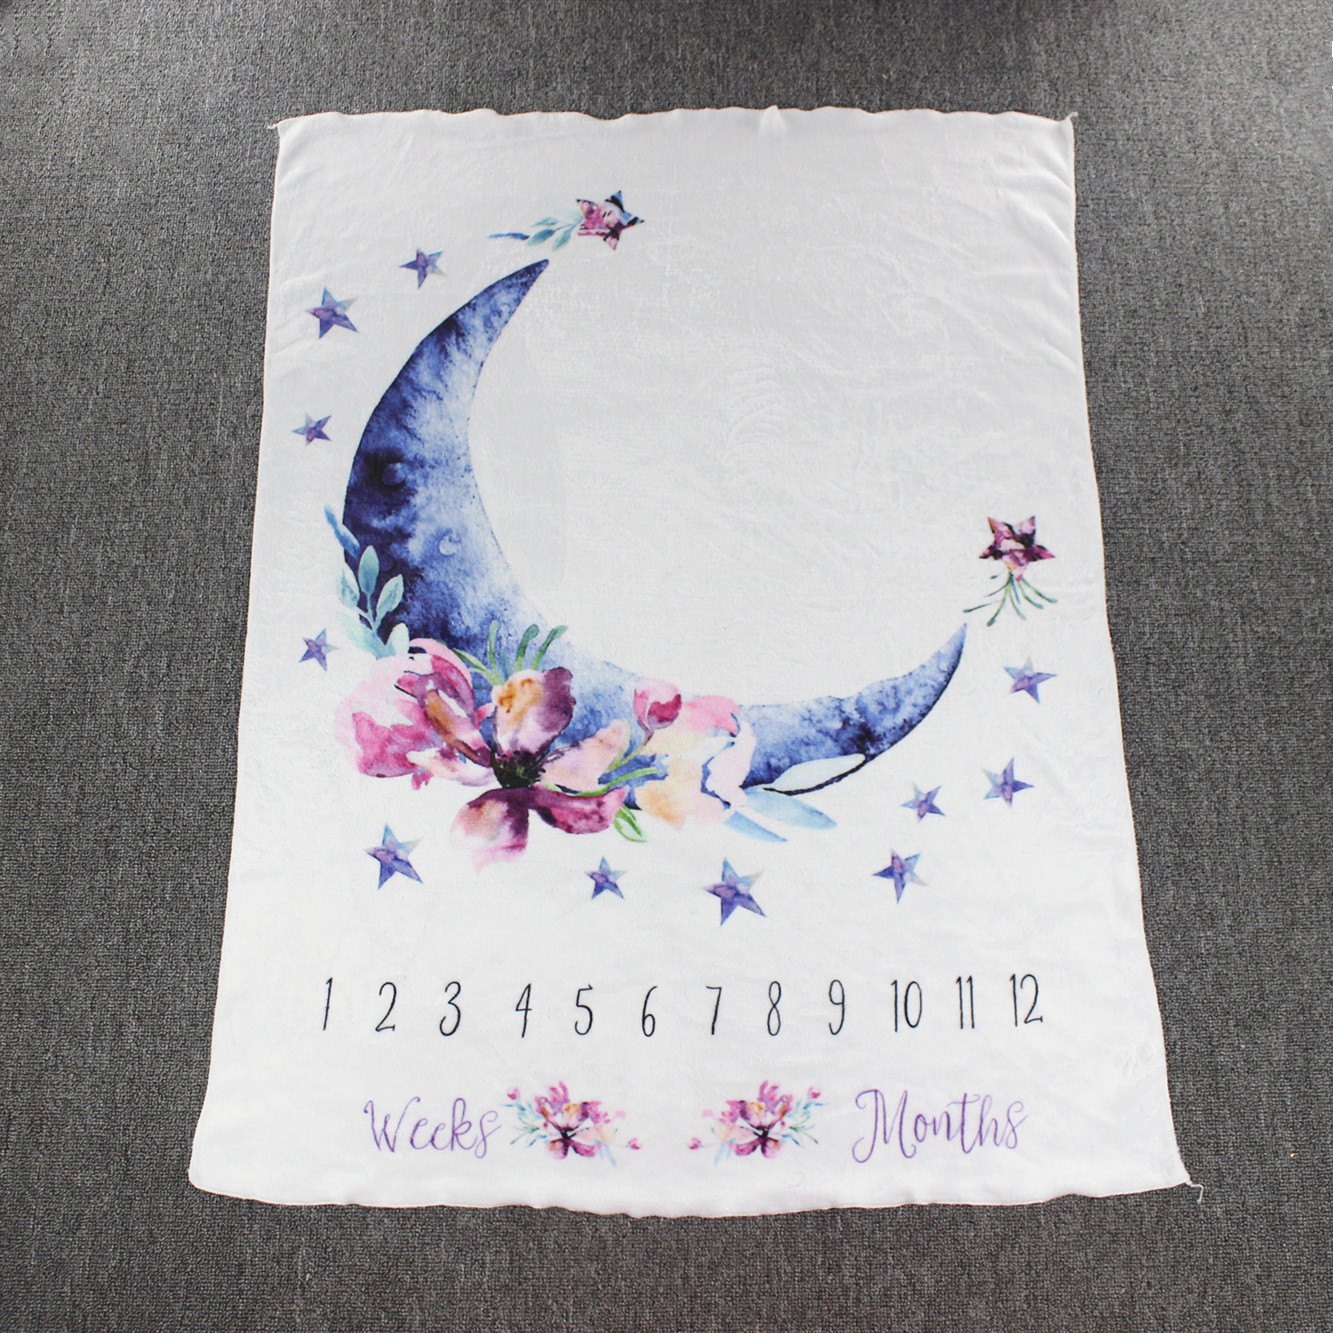 Baby Milestone Blanket Infant Photography Props Shooting Growth Monthly Blankets Flannel Swaddle Wraps Moon Background Cloth